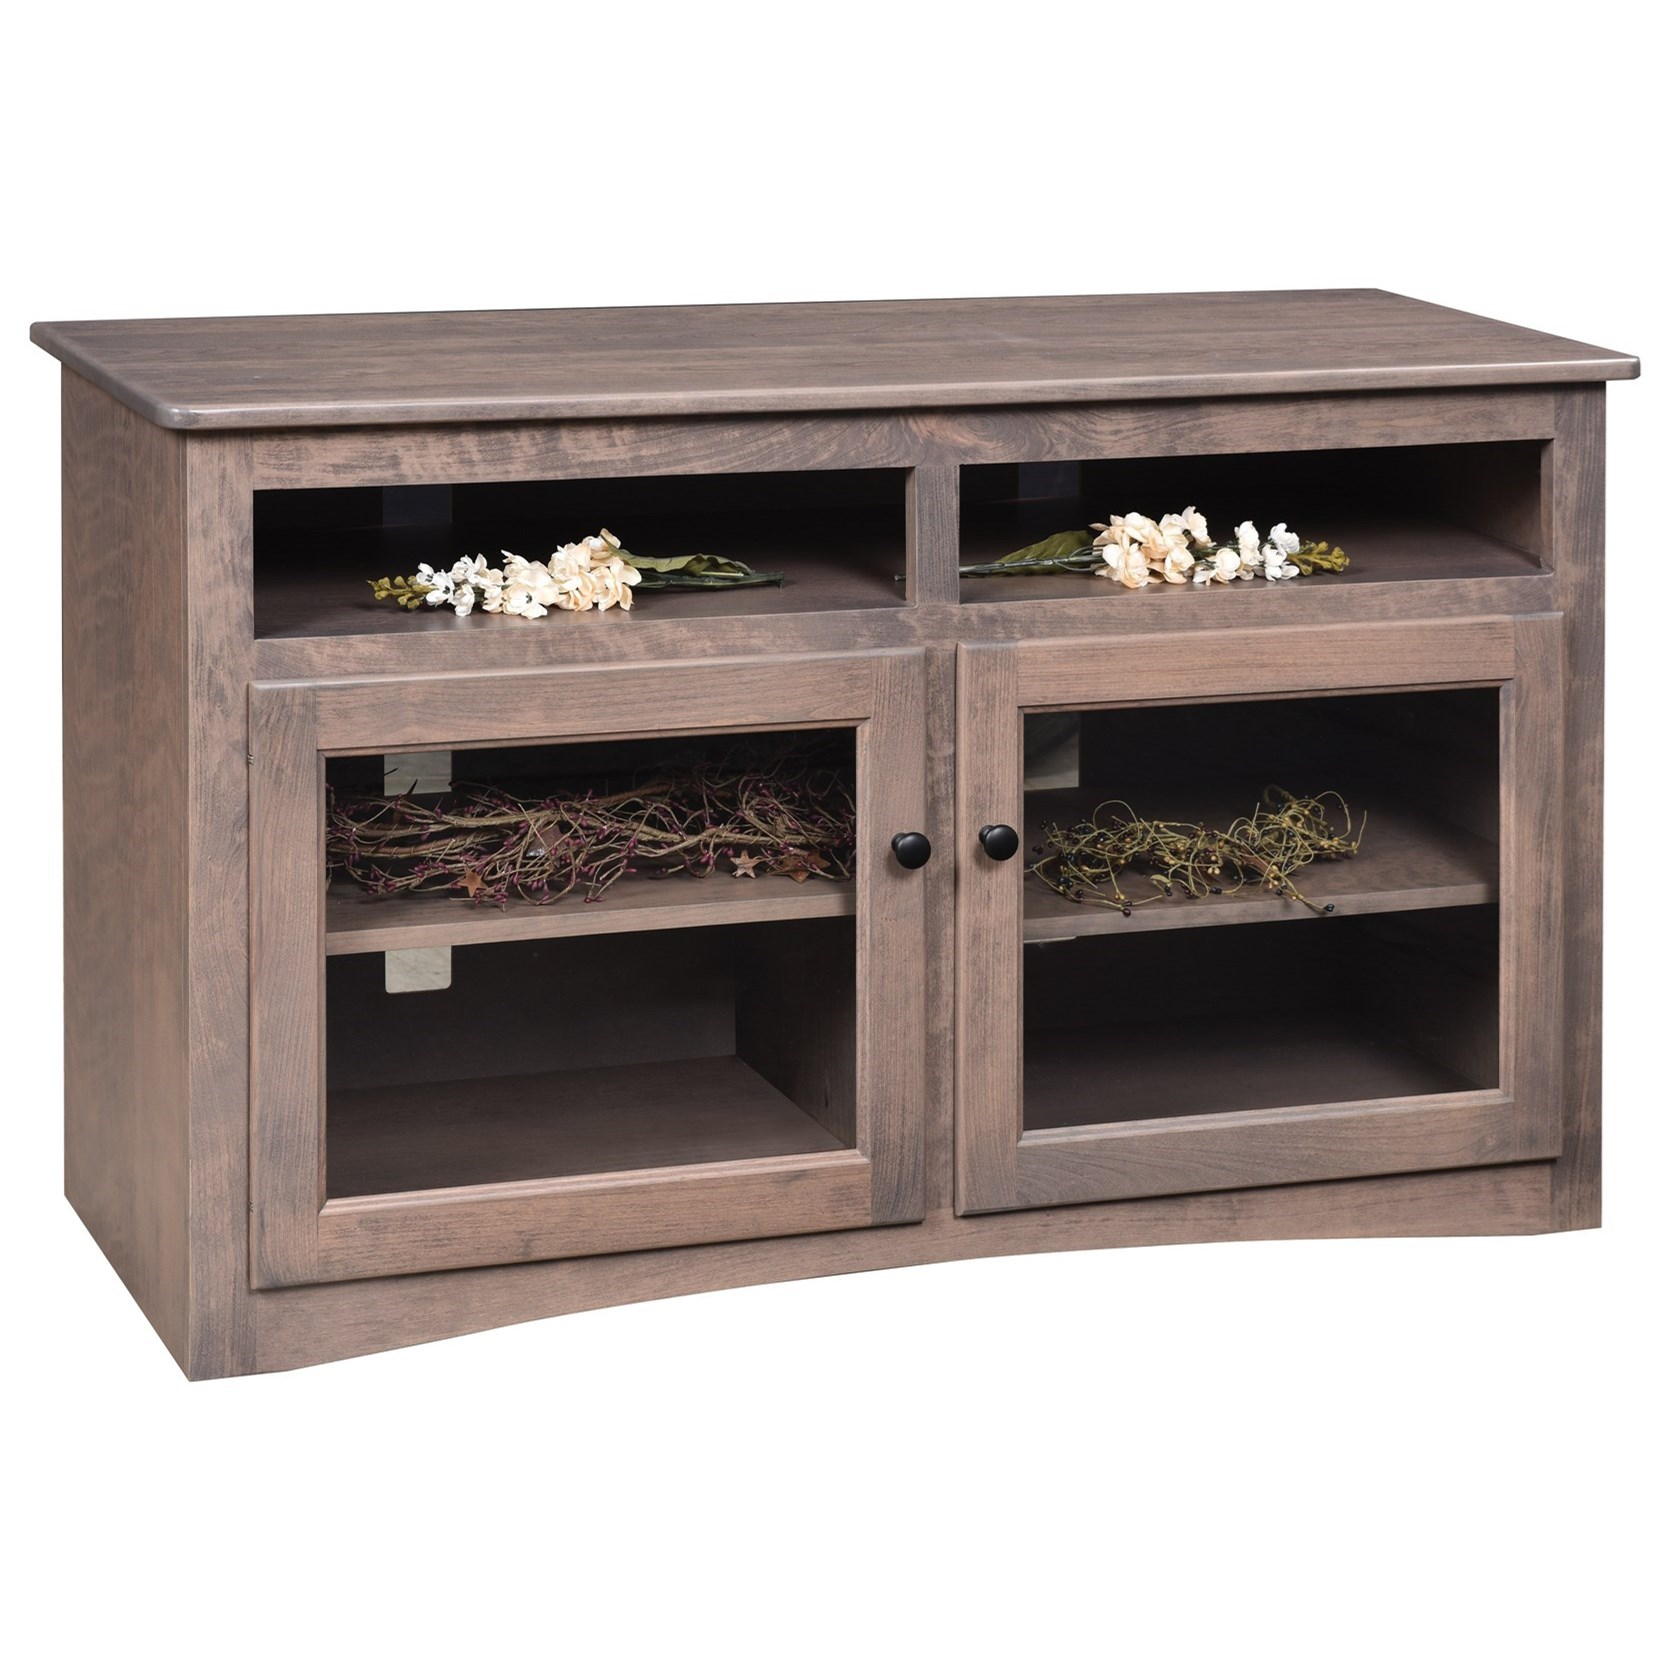 """Economy 50"""" Customizable TV Stand by Ashery Oak at Saugerties Furniture Mart"""